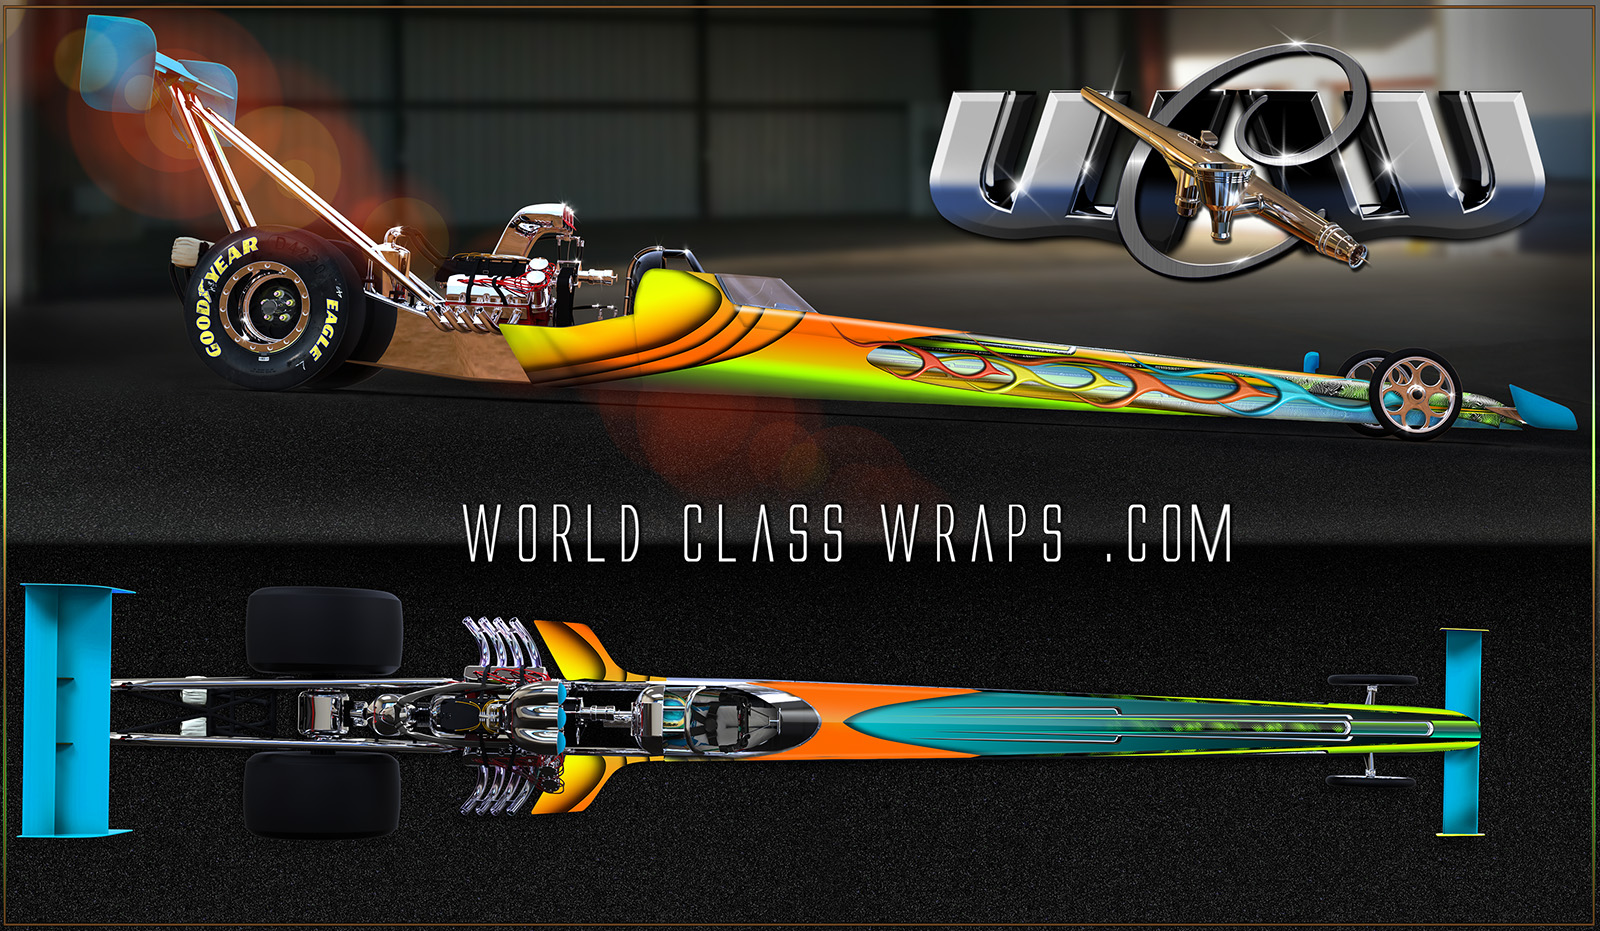 CIRCUIT CIRCUS DRAGSTER GRAPHICS WRAP IMAGE